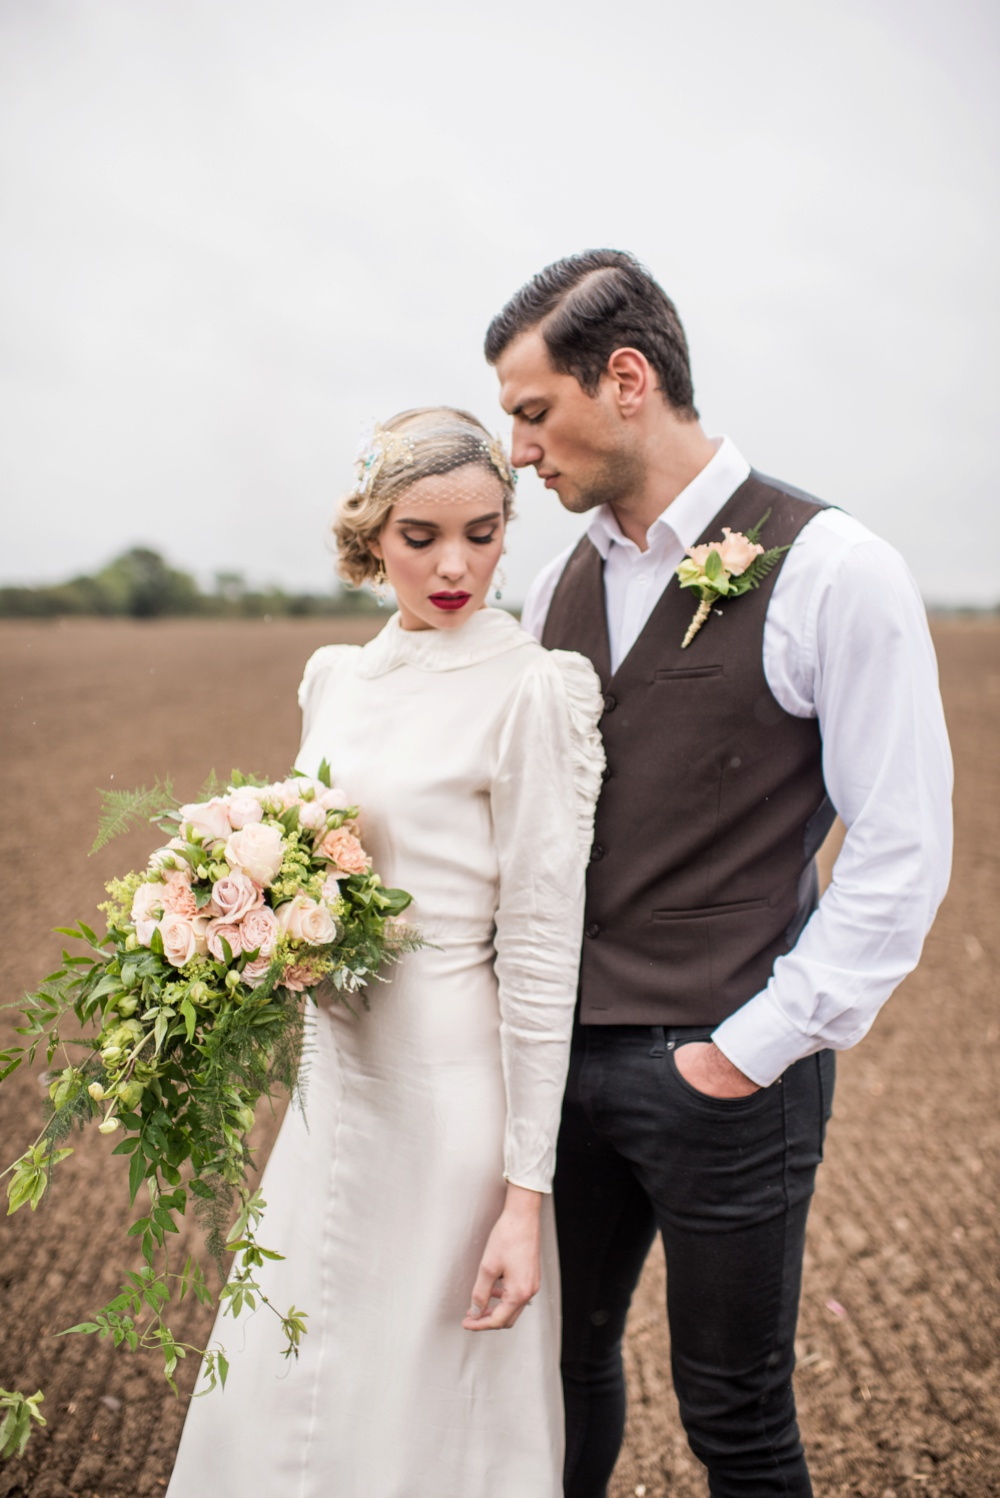 fine-art-wedding-photographer-jane-beadnell-photography-bridal-accessories-bespoke-vintage-castle-72